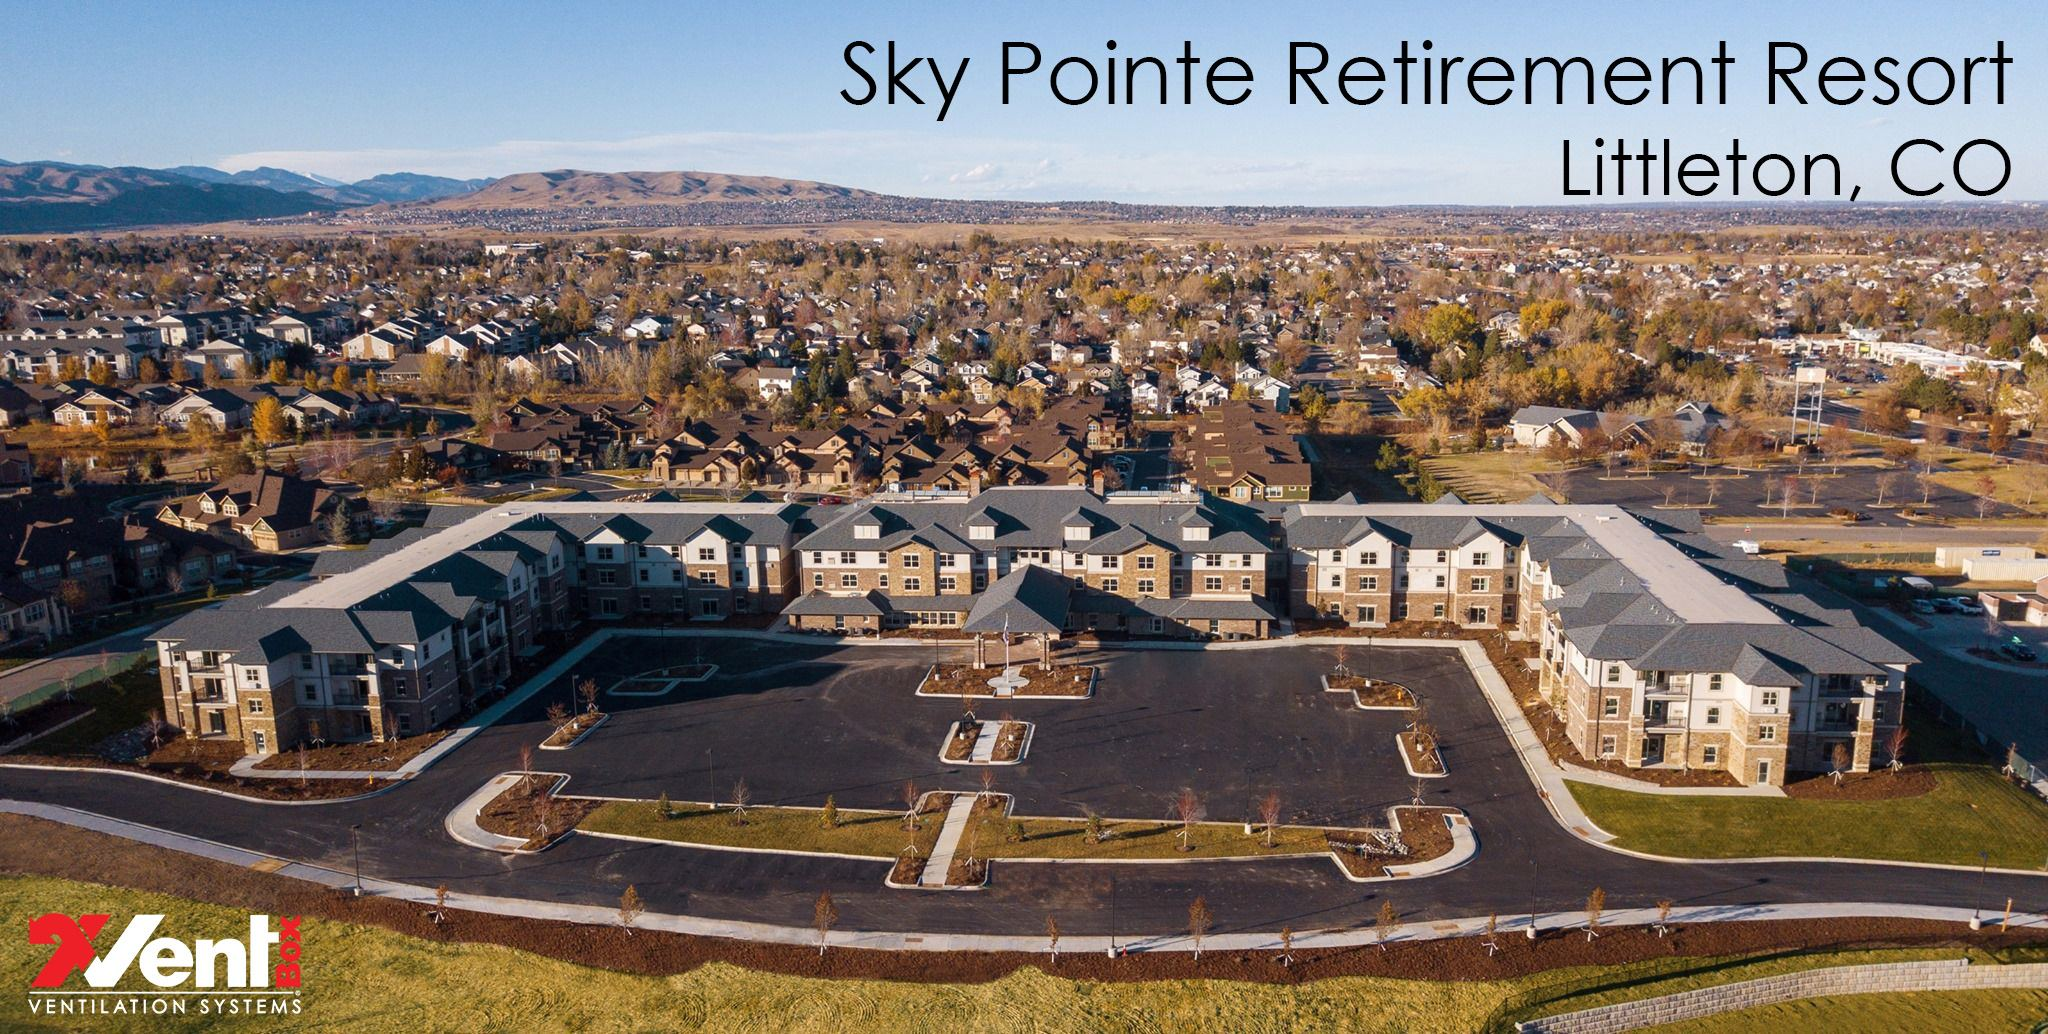 Sky Pointe Retirement Resort